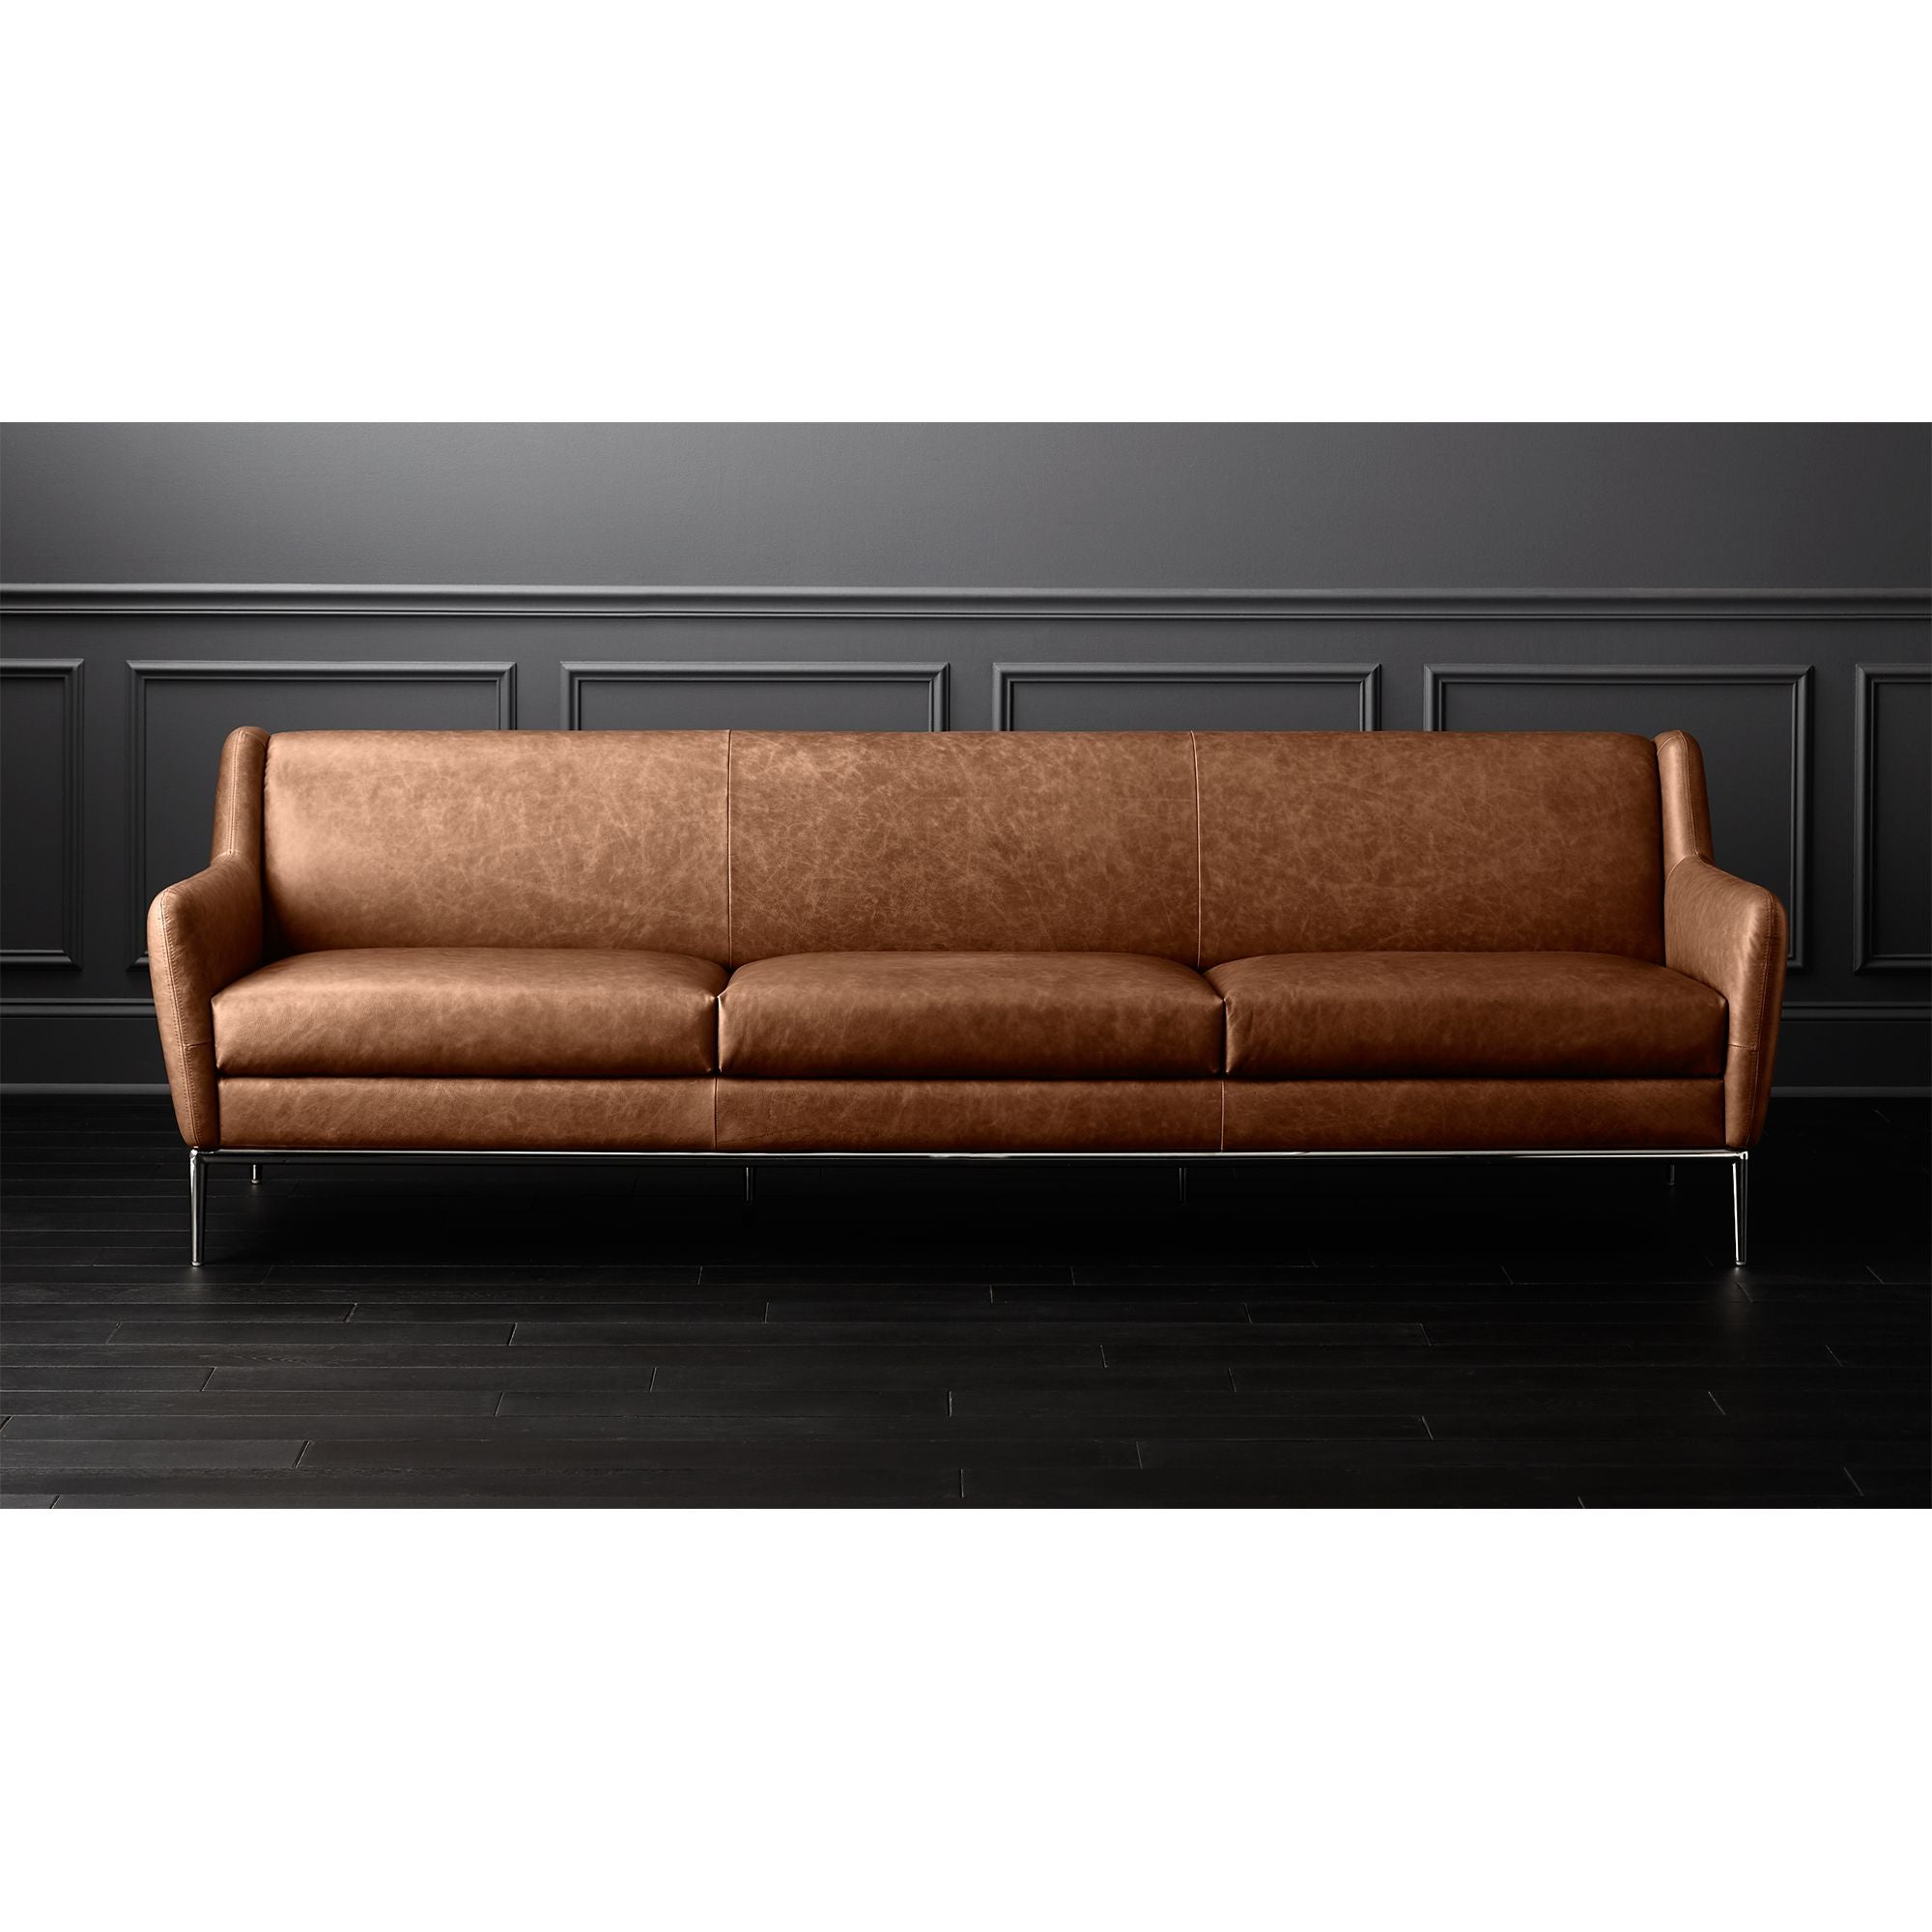 - SALFRED EXTRA LARGE COGNAC LEATHER SOFA – Merch Projects